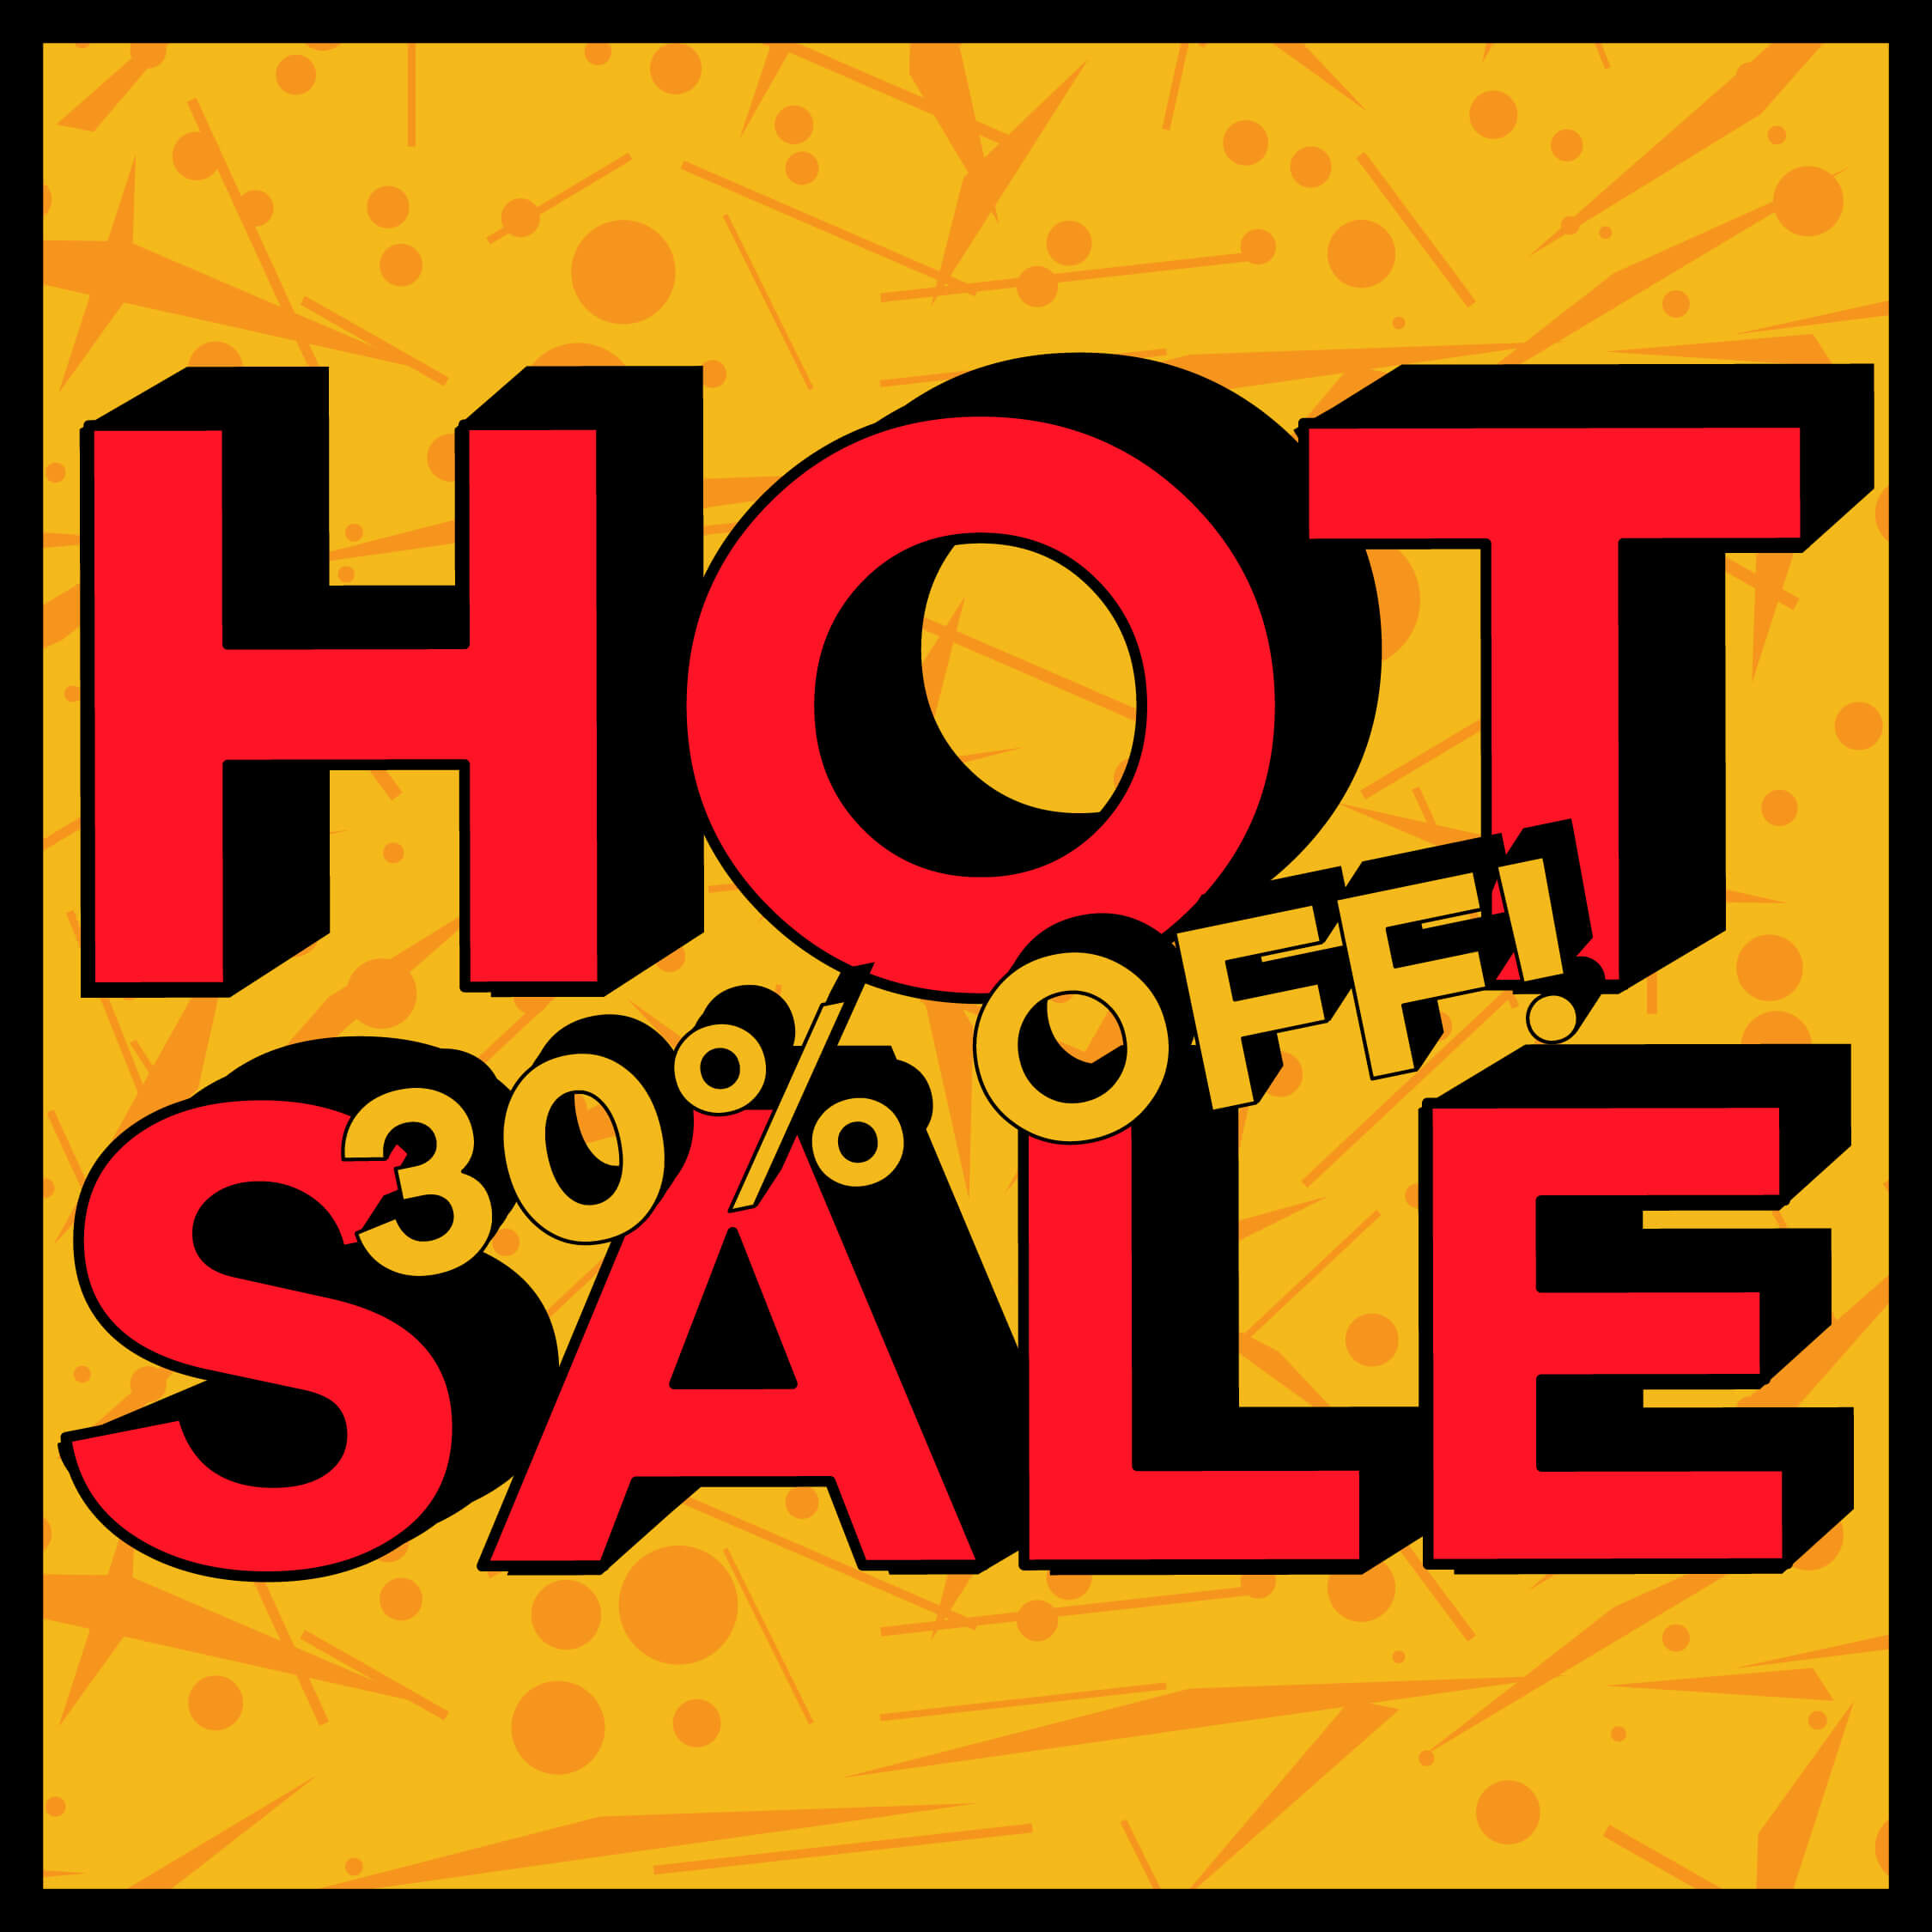 HOT SALE 2018 RED MARKET-03